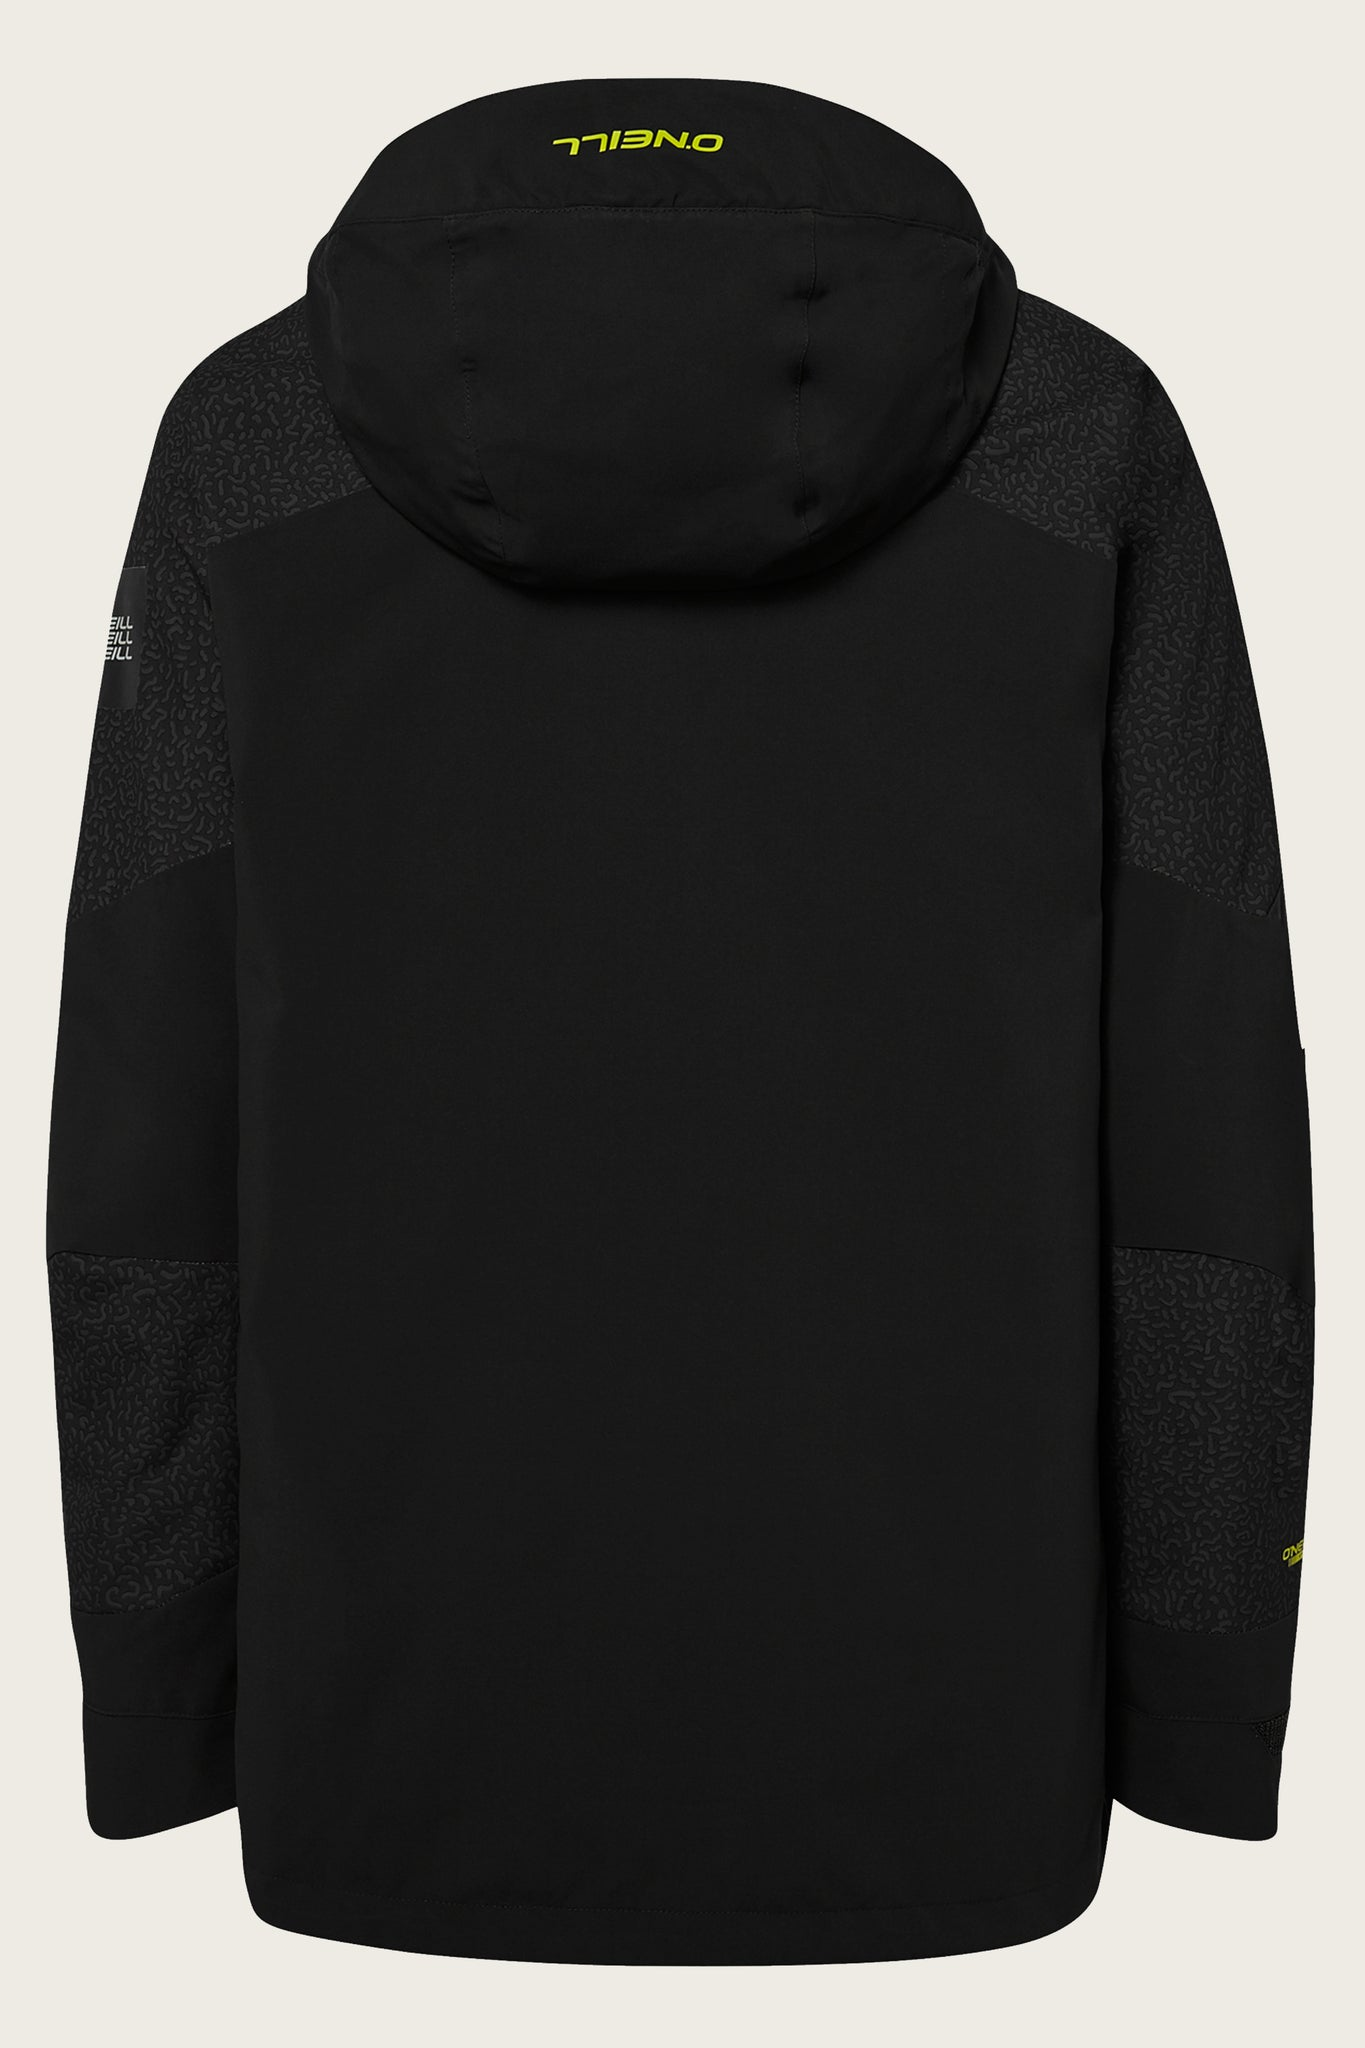 Droppin Jacket - Black | O'Neill